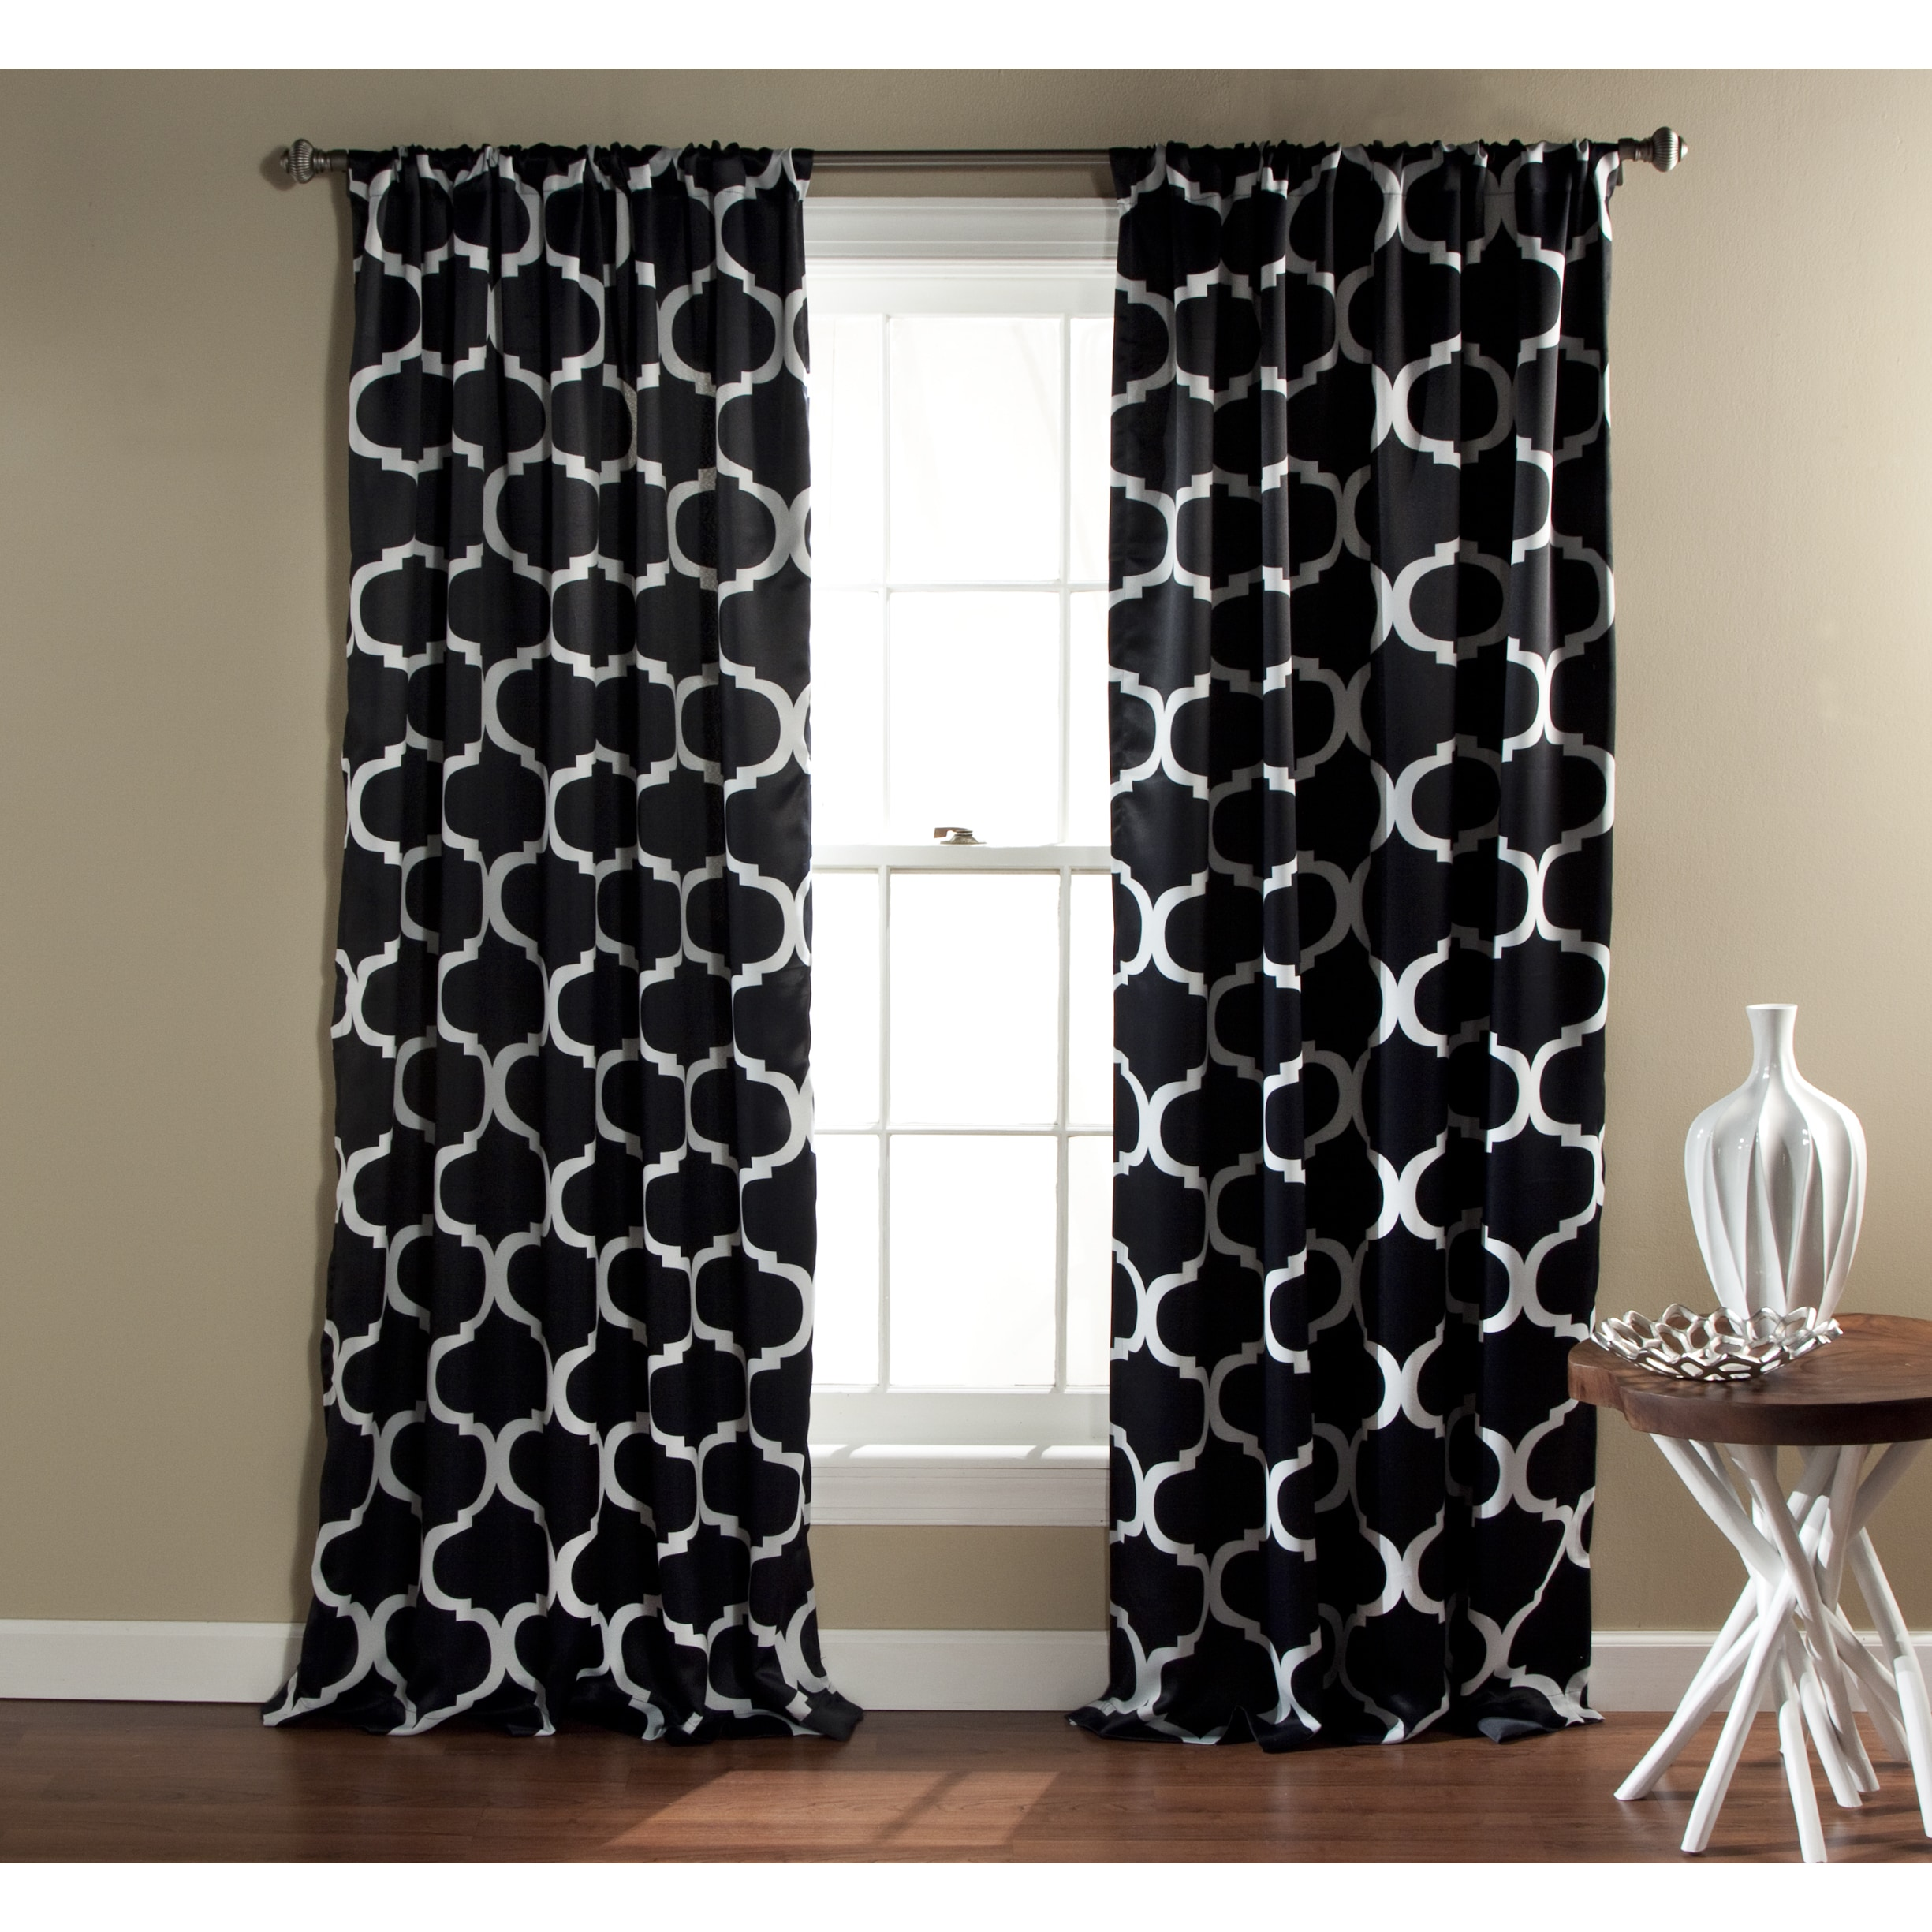 curtain bronze rod aurora panel pin lace curtains inch sheer piece and mix home tulle match pair grommets blackout